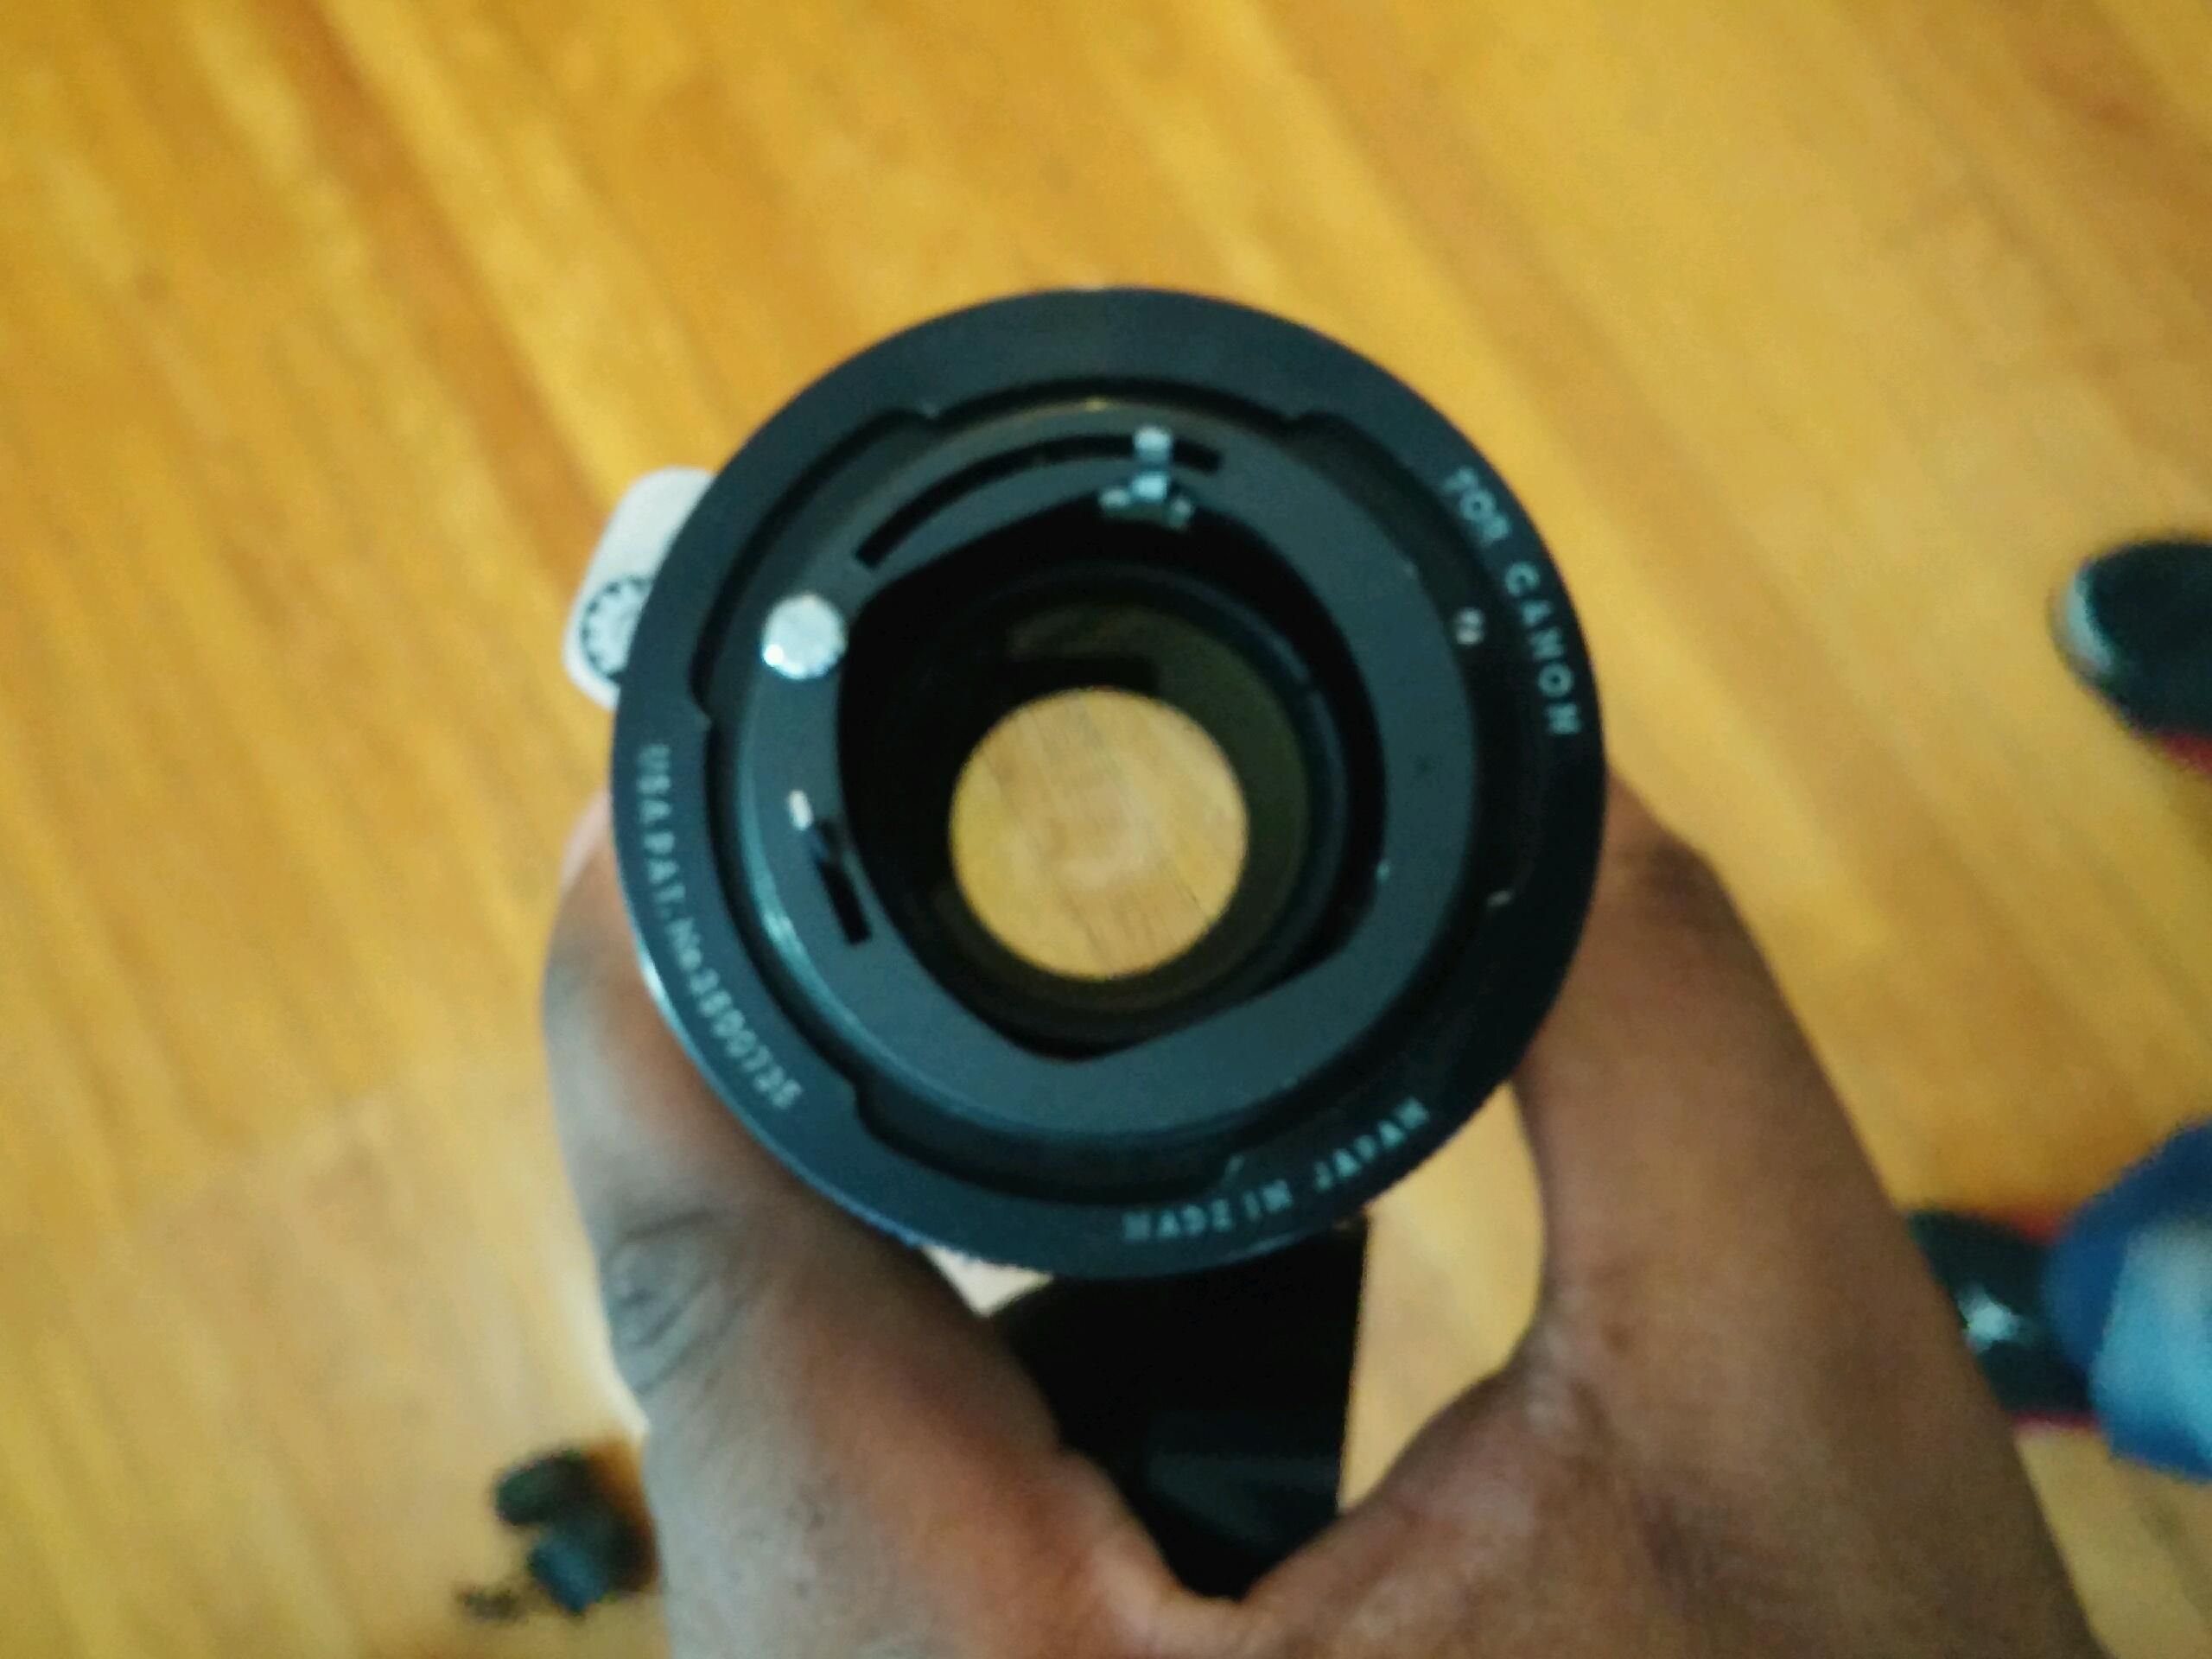 How do I identify the lens mount for this old lens which says